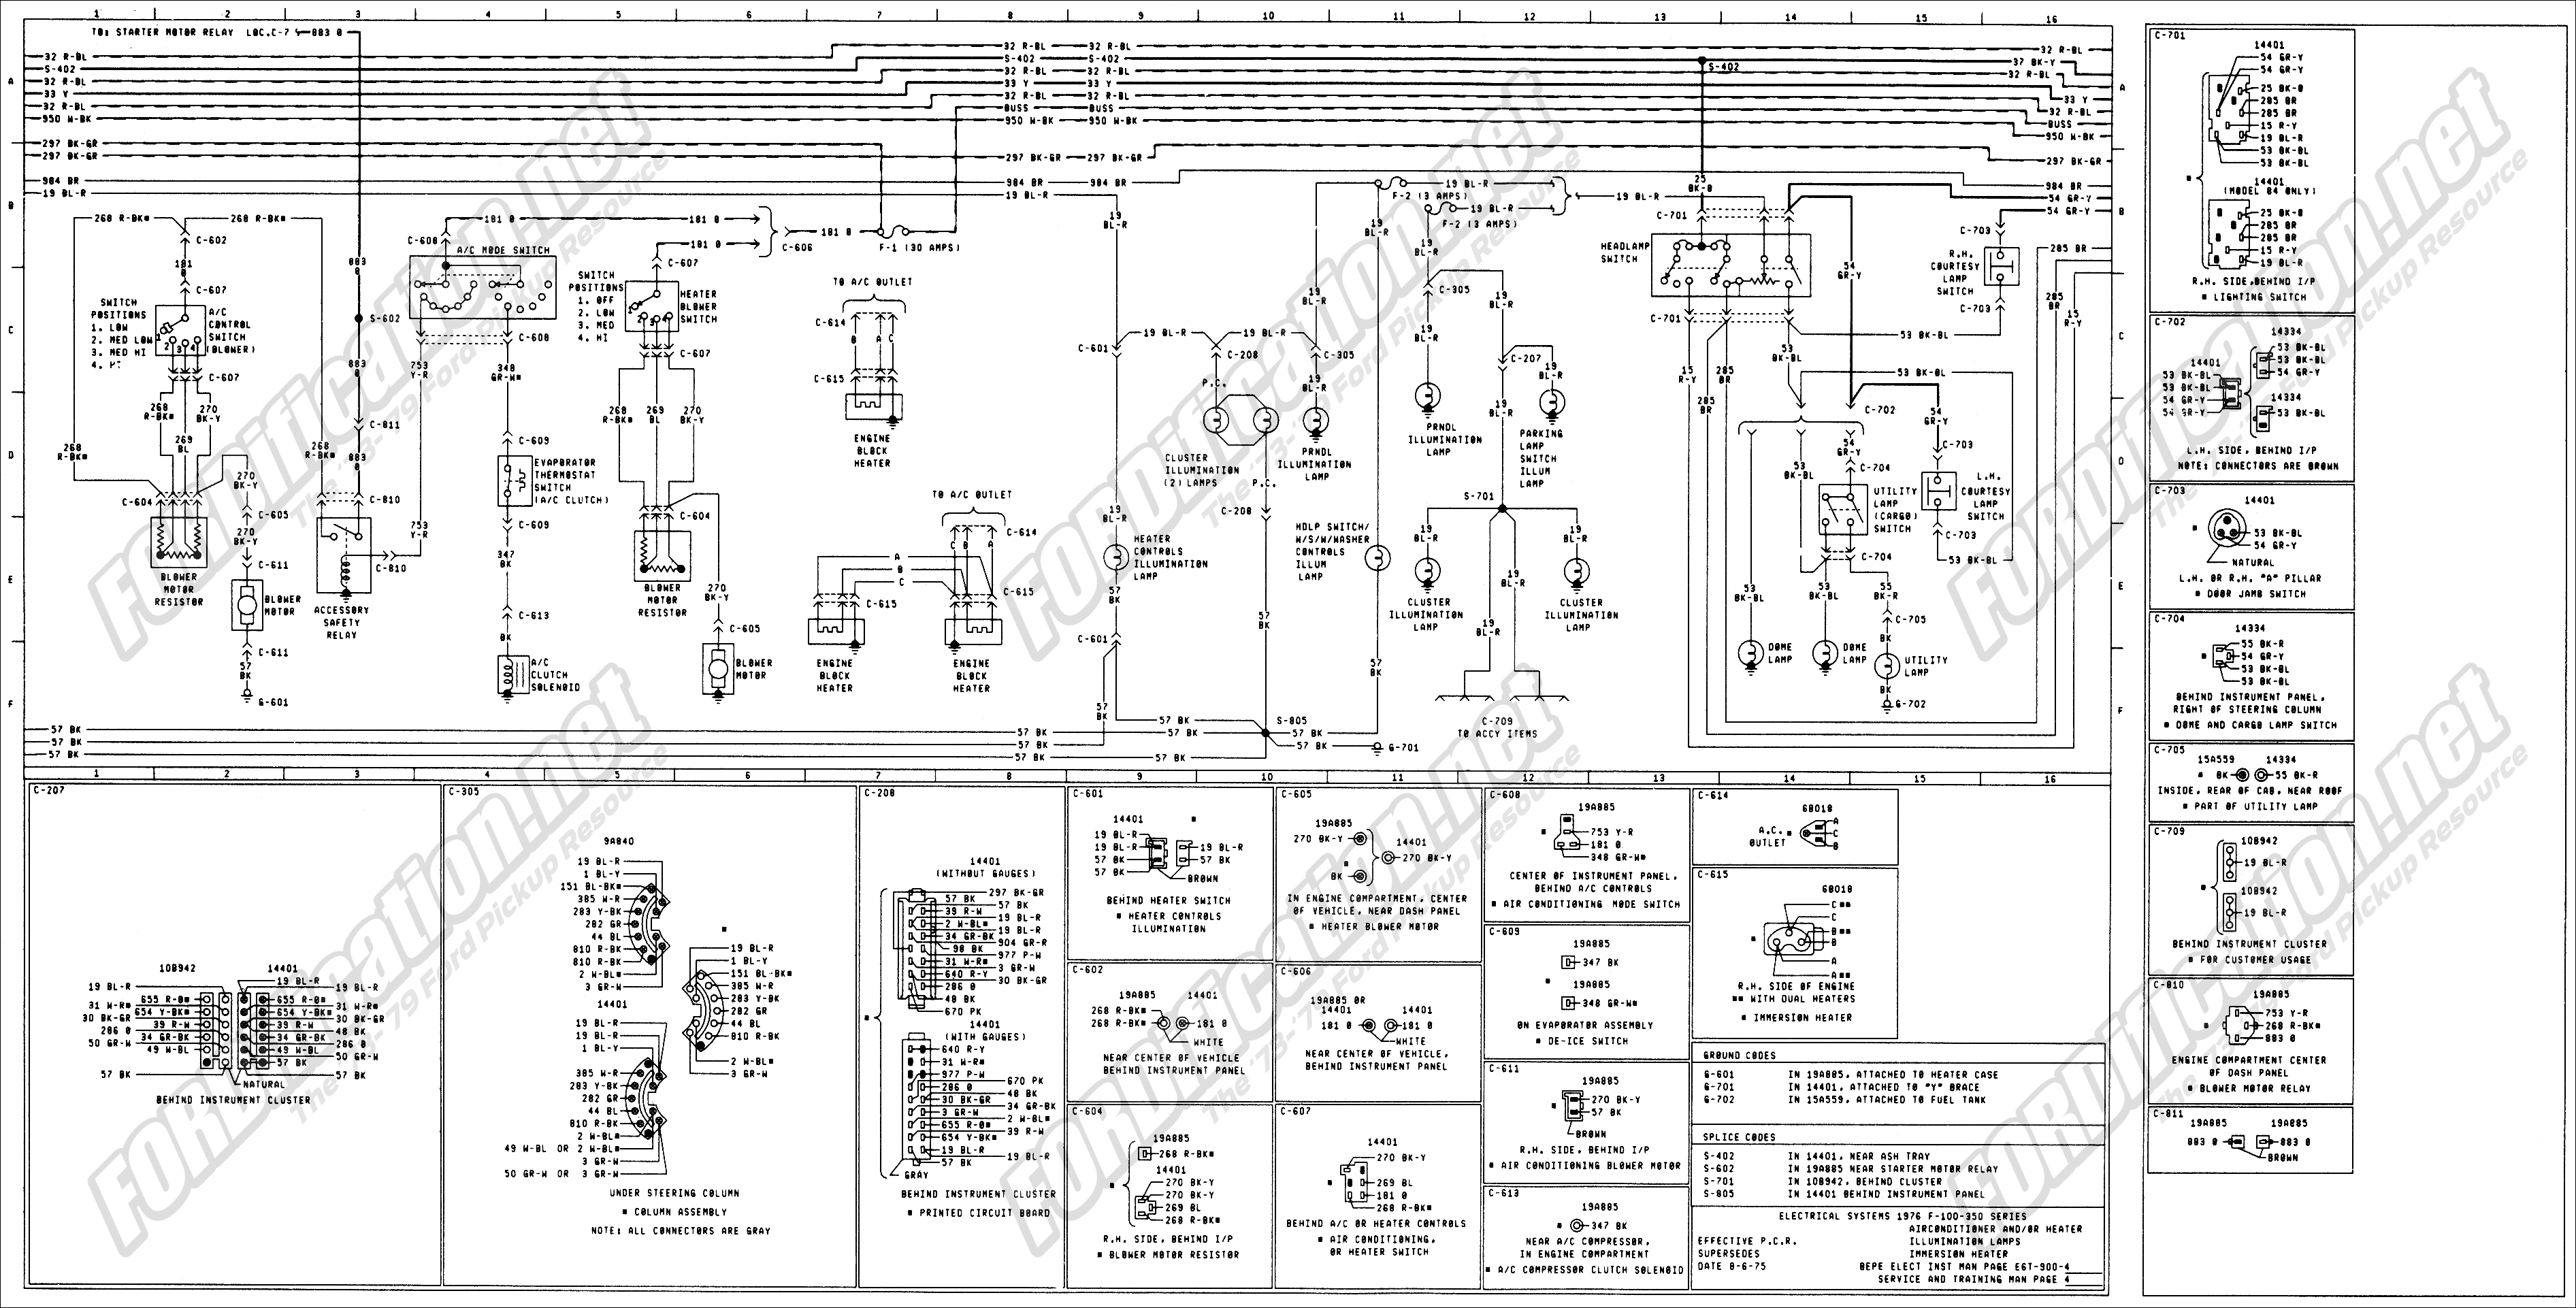 1973 ford f100 wiring diagram 1973 ford truck wiring diagram